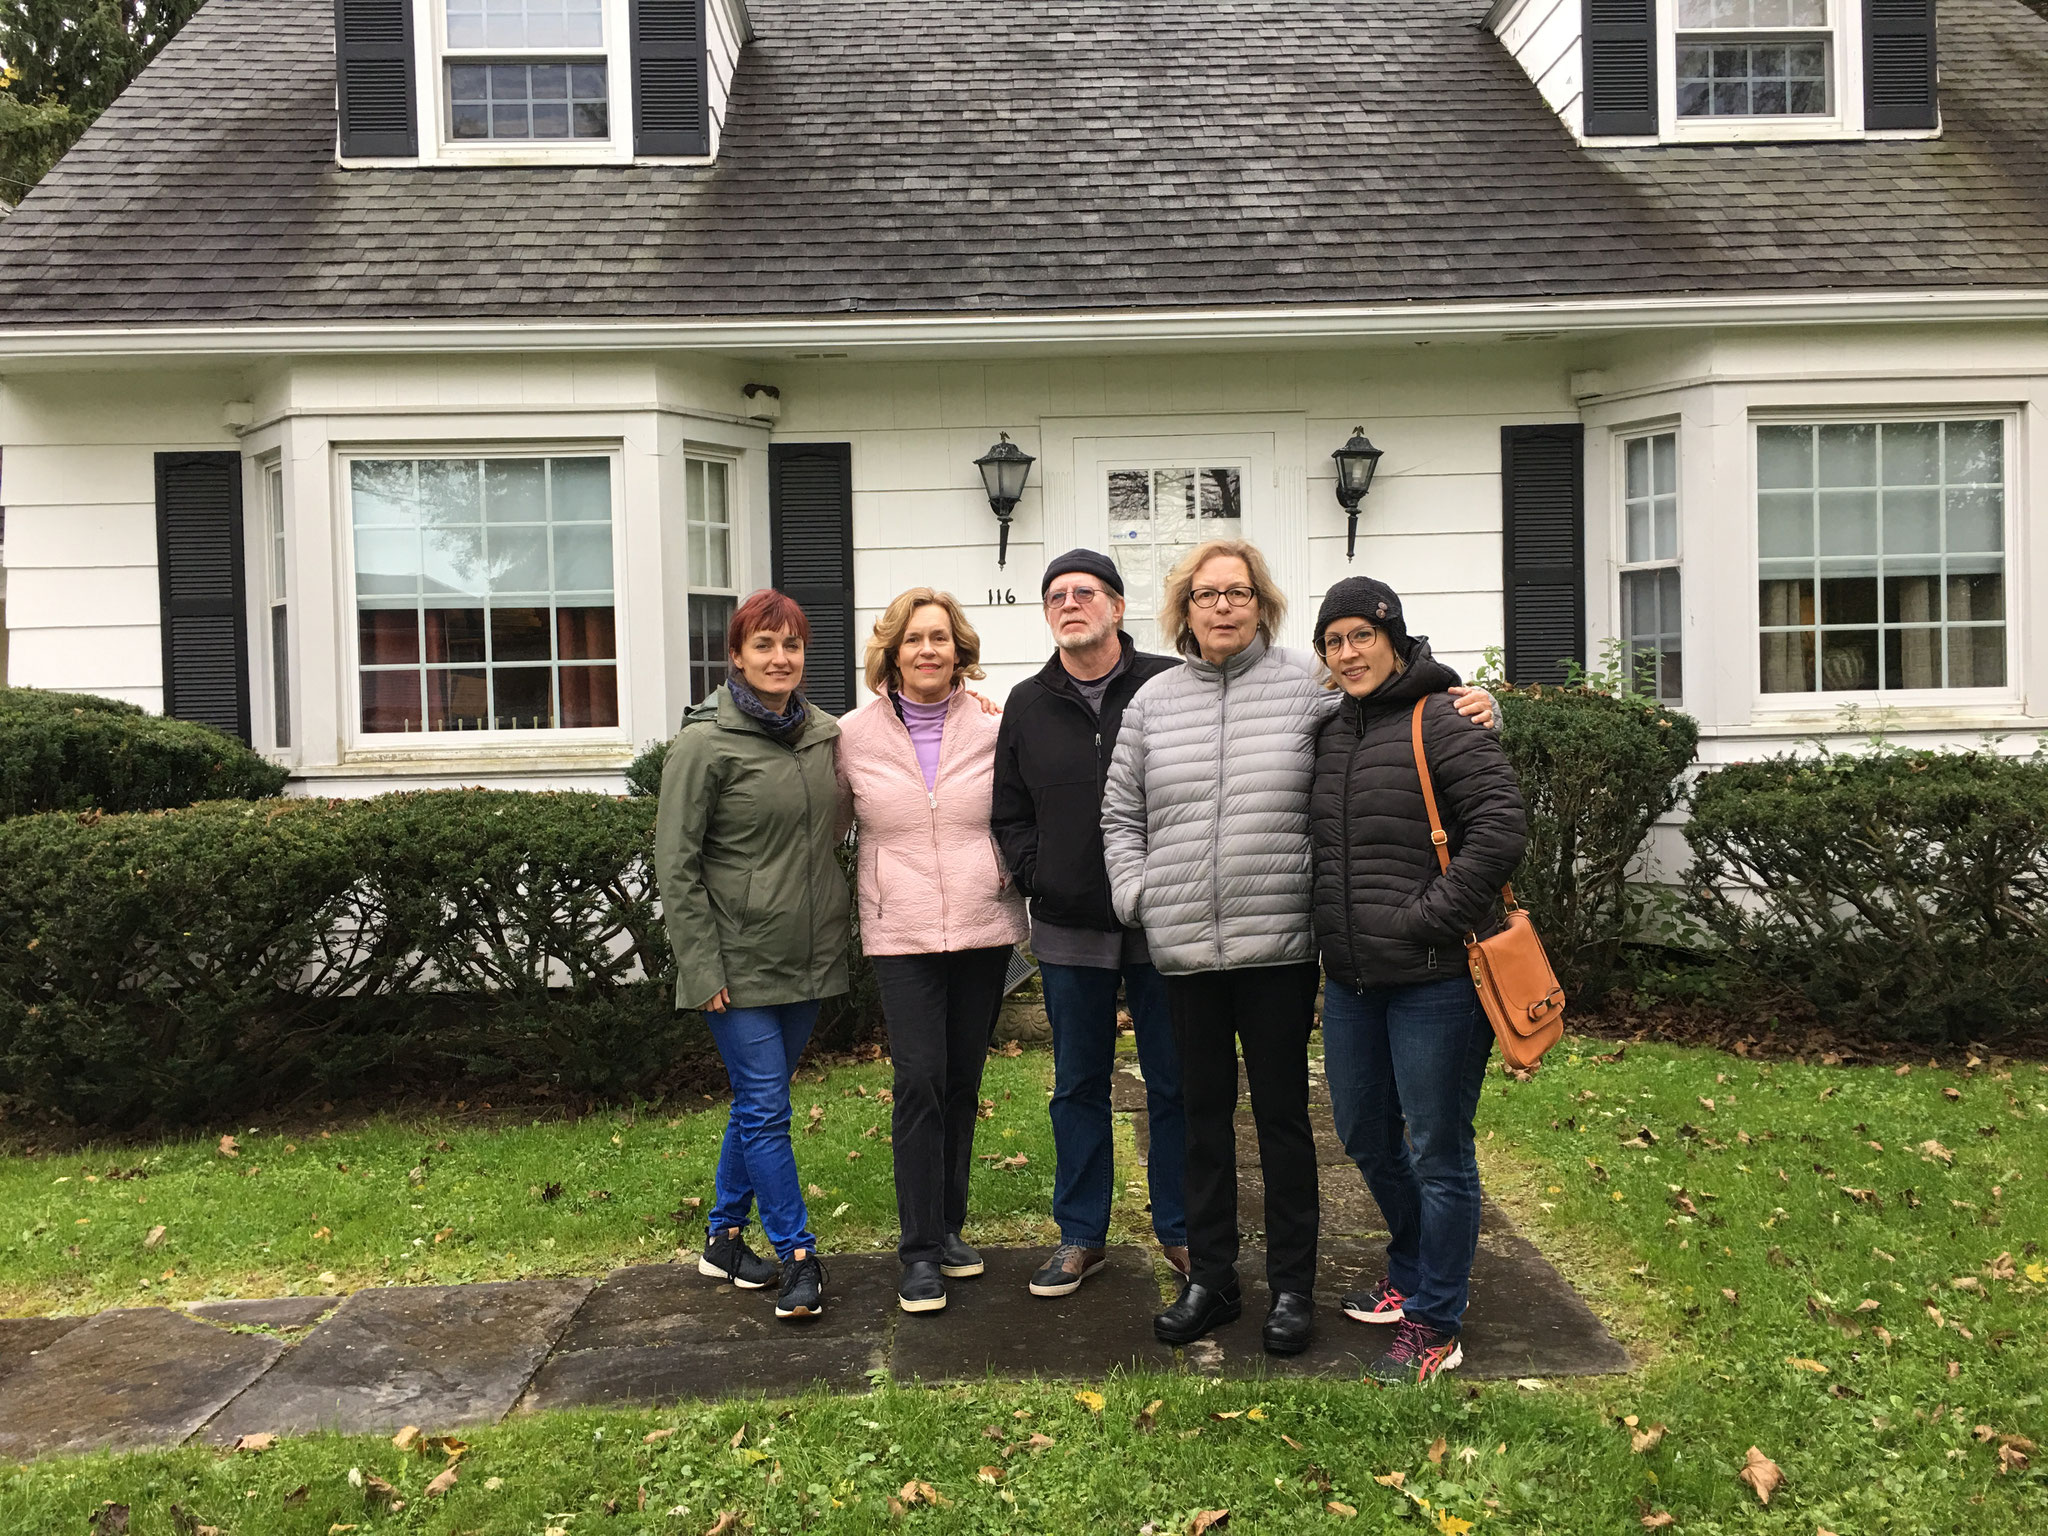 Wendy, Lorraine, Jerry, Jan, & Emily Barner Oct. 2018, Syracuse, NY